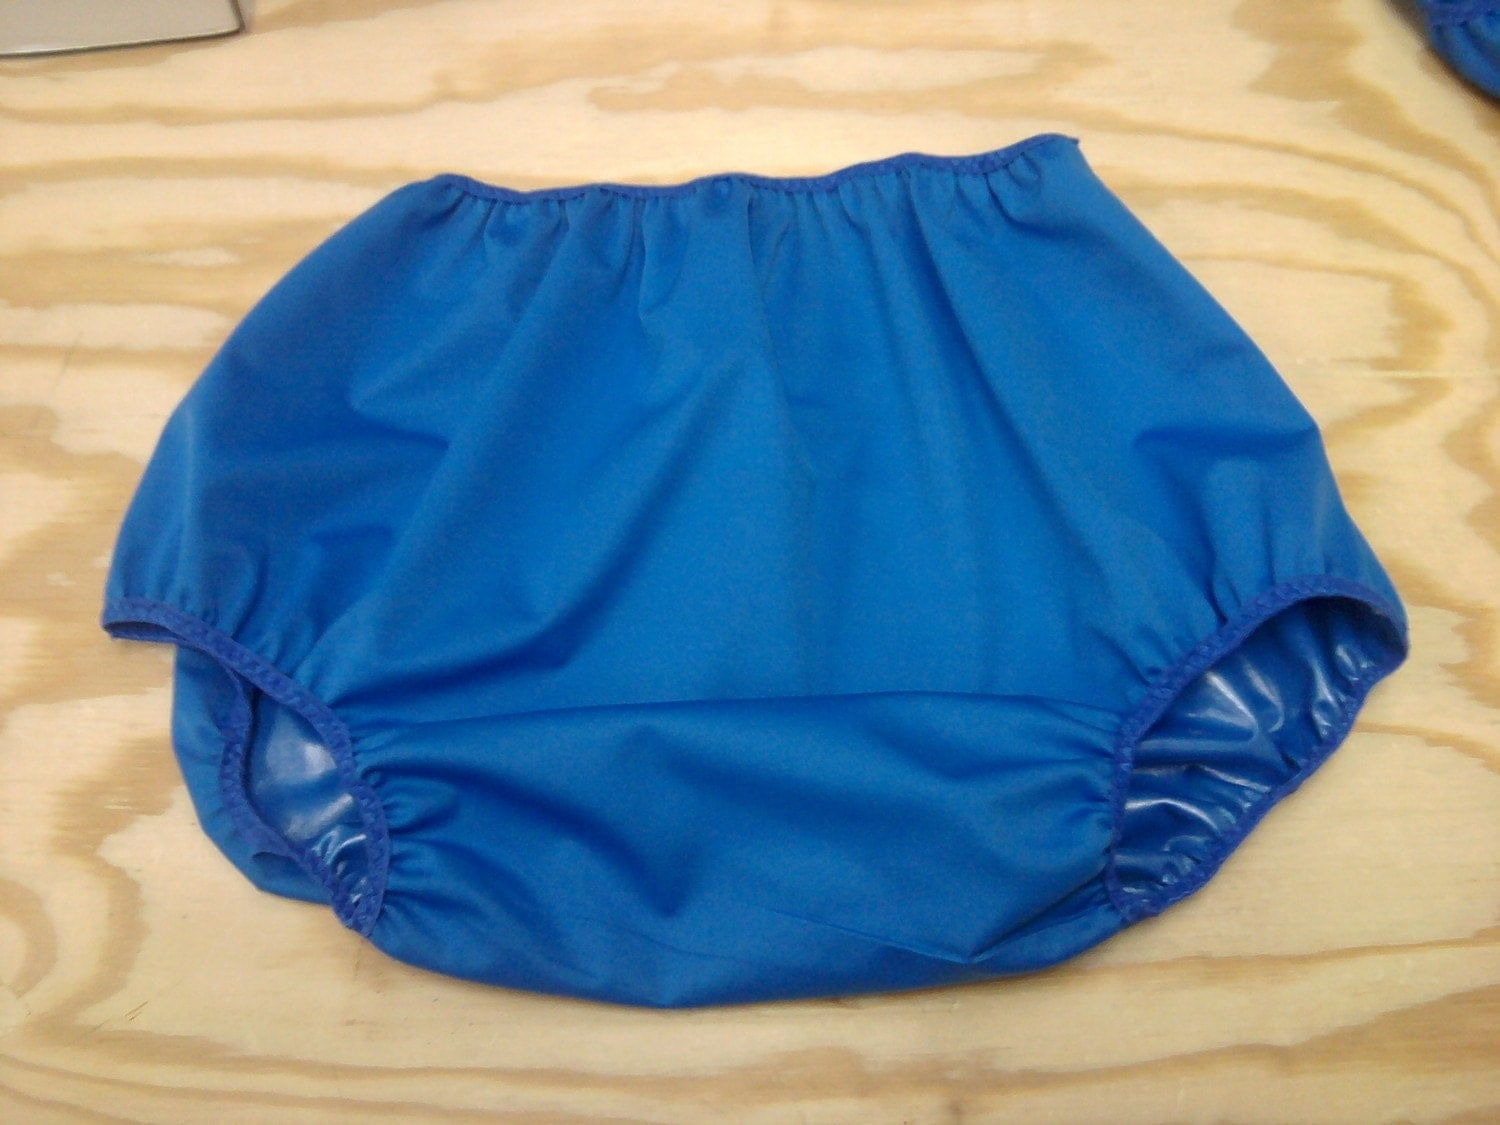 Adult Diaper Cover - Blue - Size 44 to 52 inches. From nevergrownup